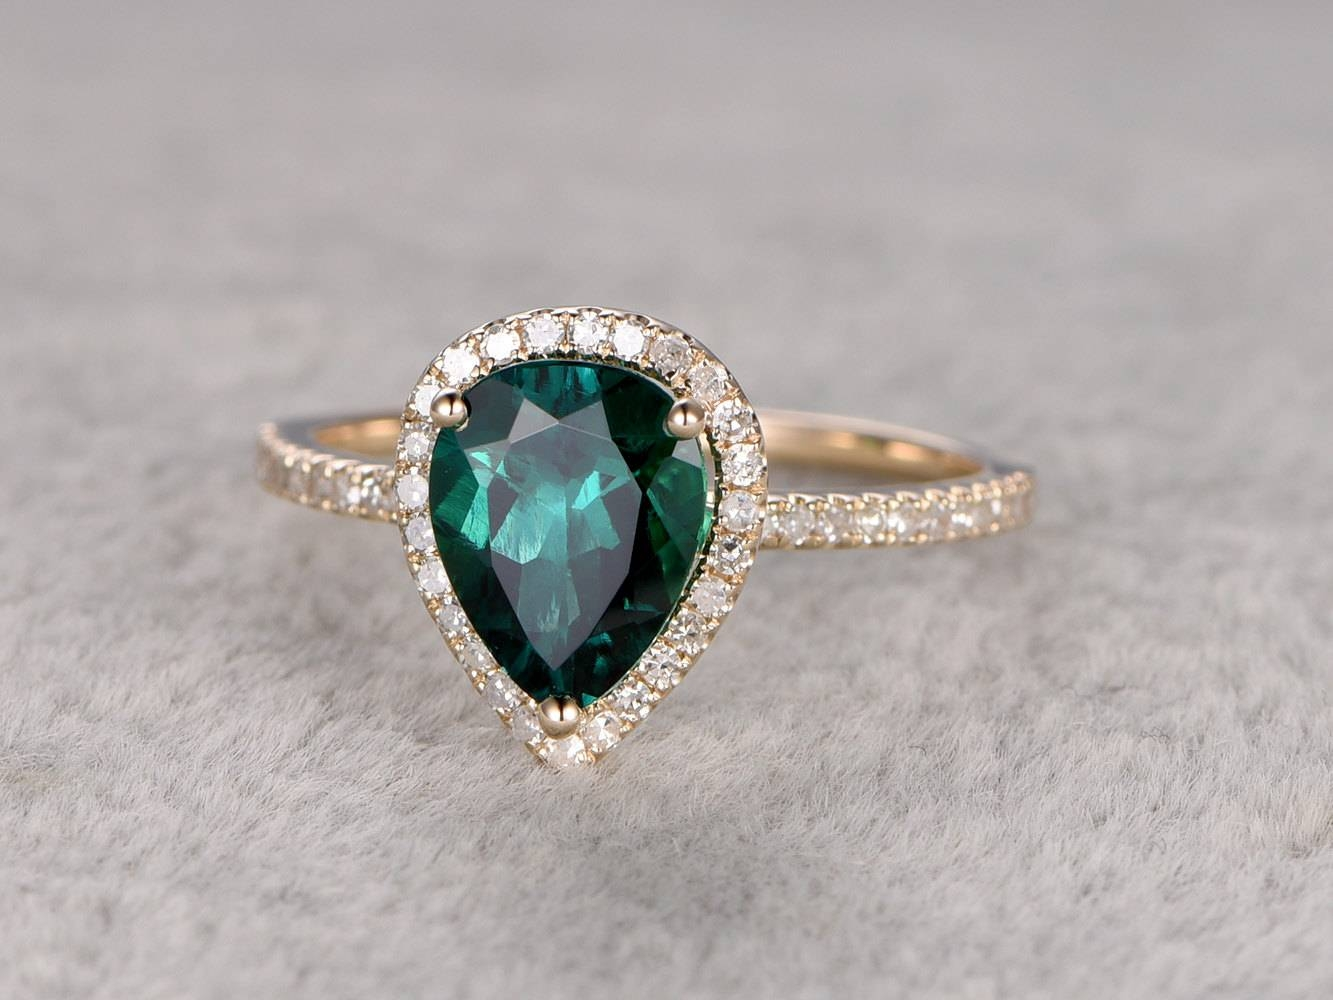 Engagement Rings : Emerald Engagement Rings Amazing Engagement Pertaining To Emrald Engagement Rings (View 2 of 15)